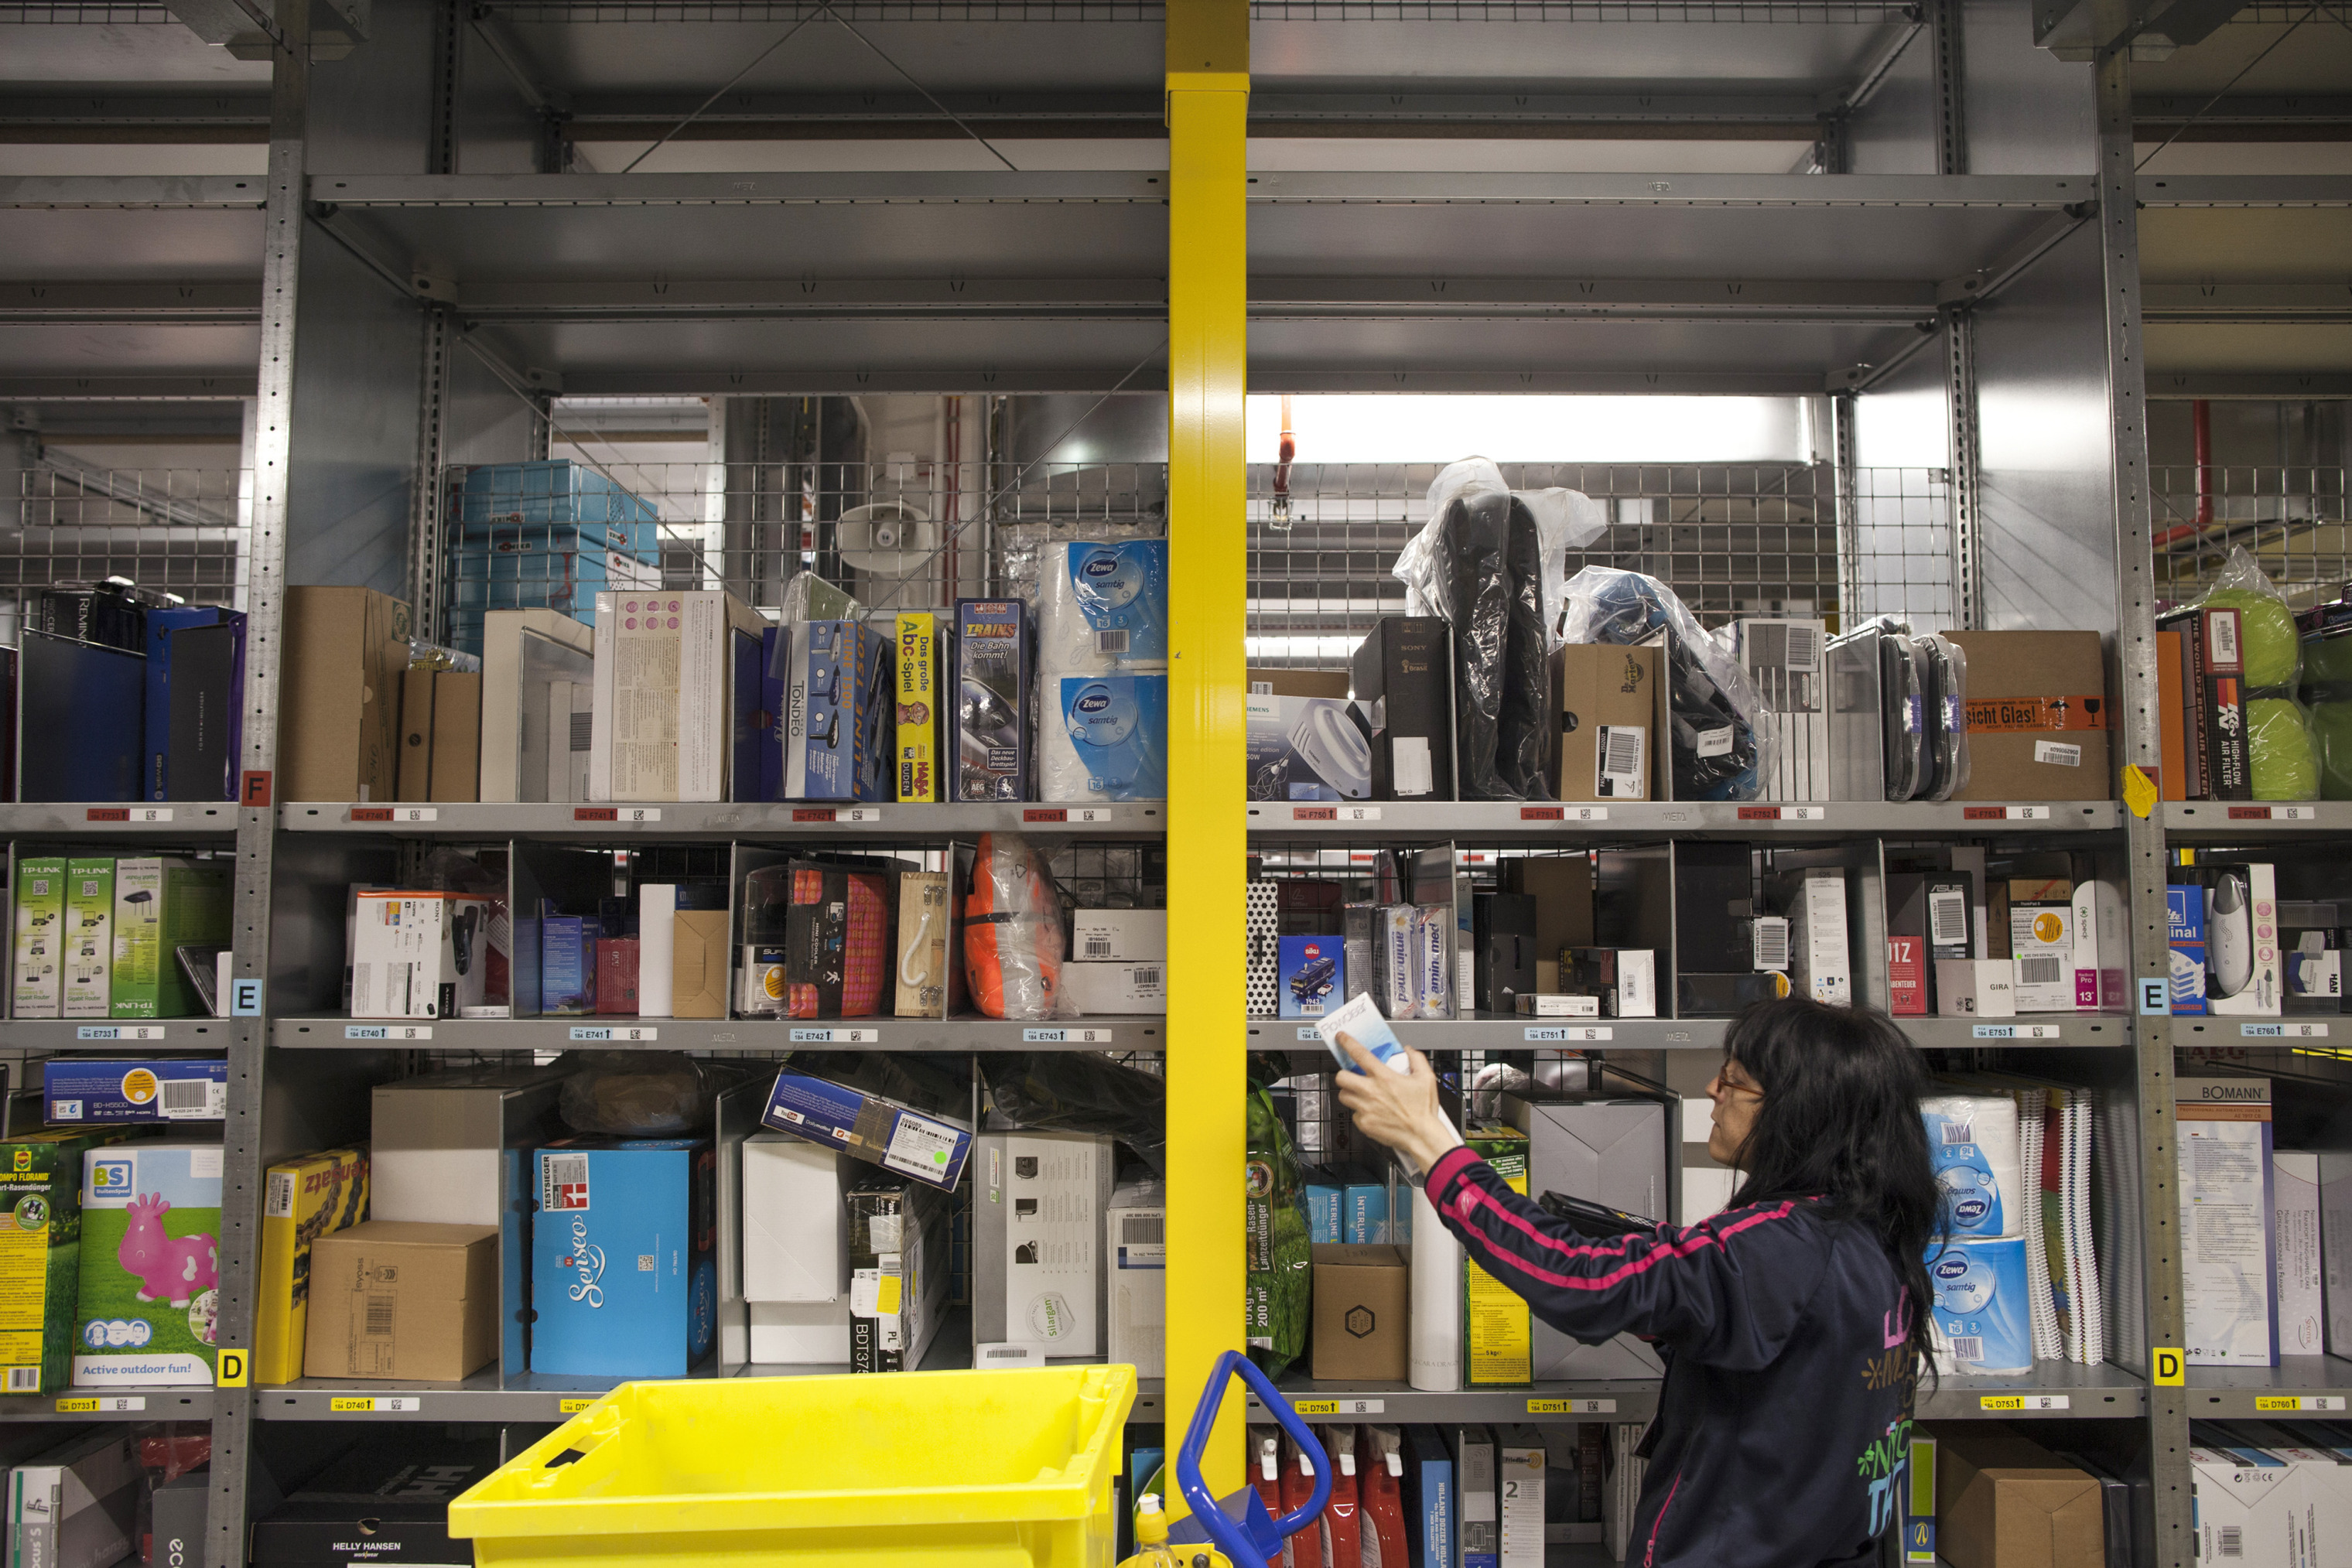 An employee selects goods from bays of merchandise as she processes customer orders at the Amazon.com Inc. fulfillment center in Poznan, Poland, on Friday, June 12, 2015.